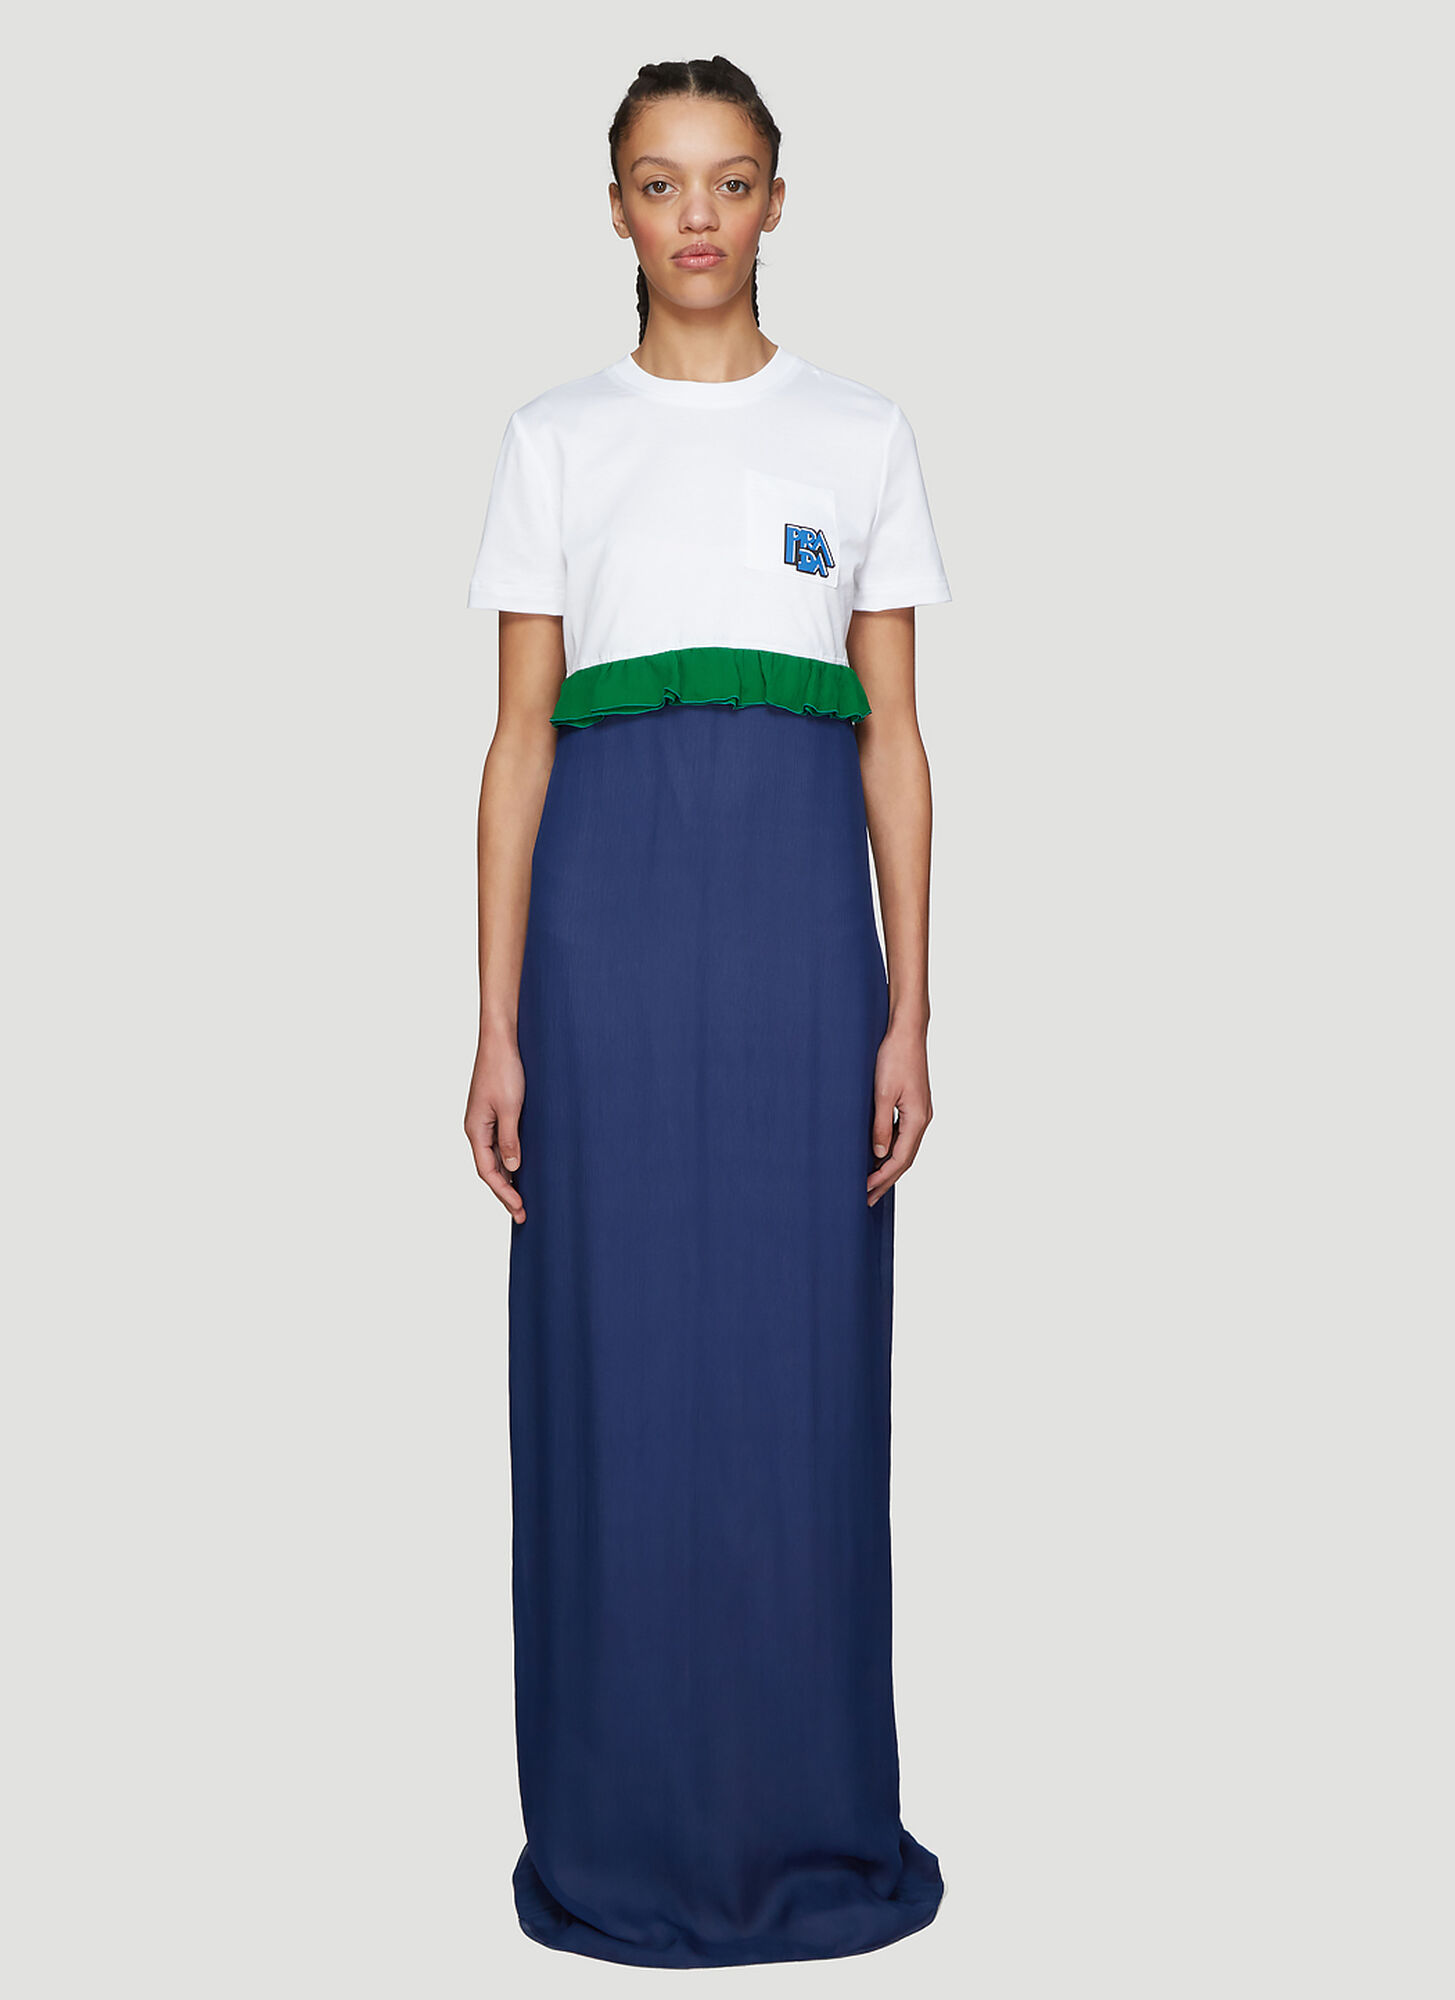 Prada Ruched T-shirt Chiffon Dress in Blue